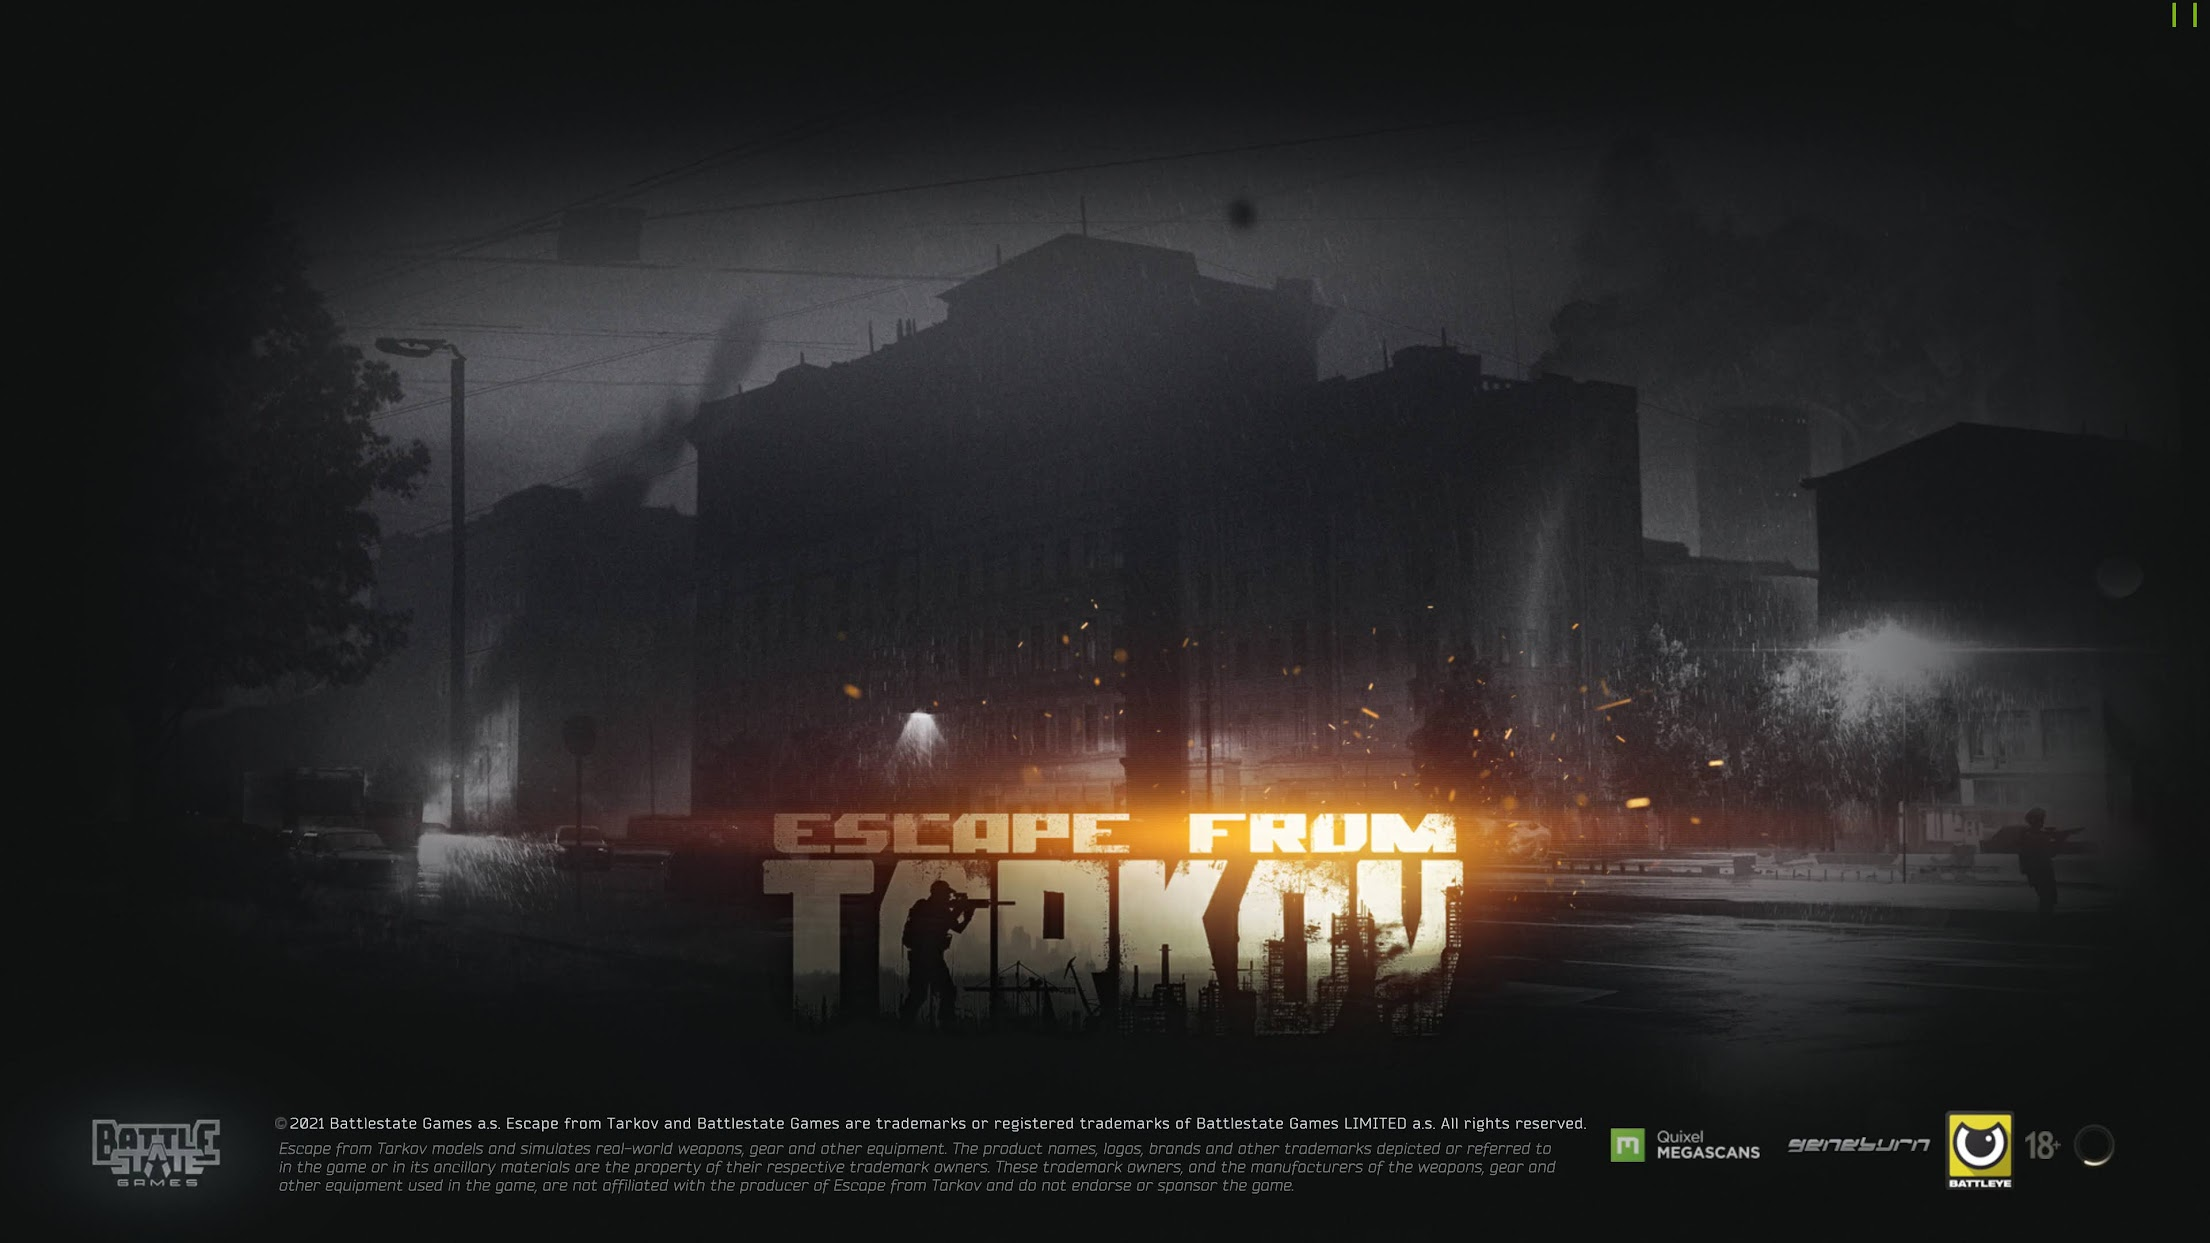 Escape from Tarkov #2 INTERCHANGEで初めてのCPUキル